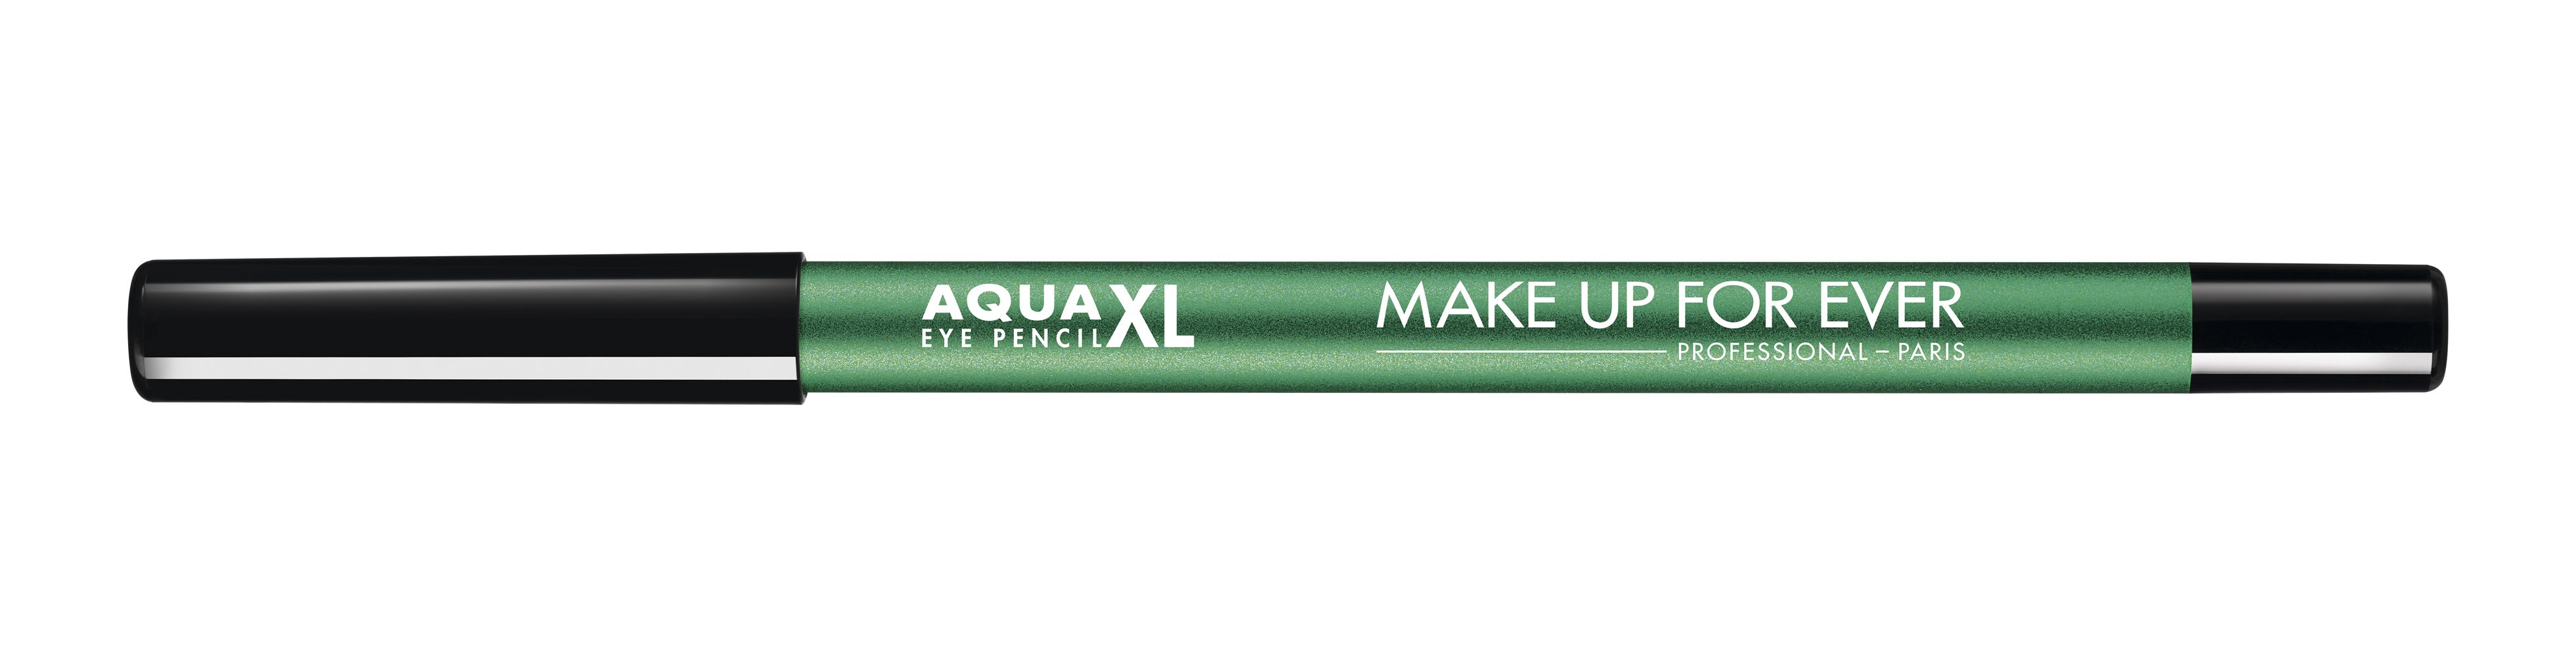 make-up-for-ever-aquaxl_i34_clsd-r8500